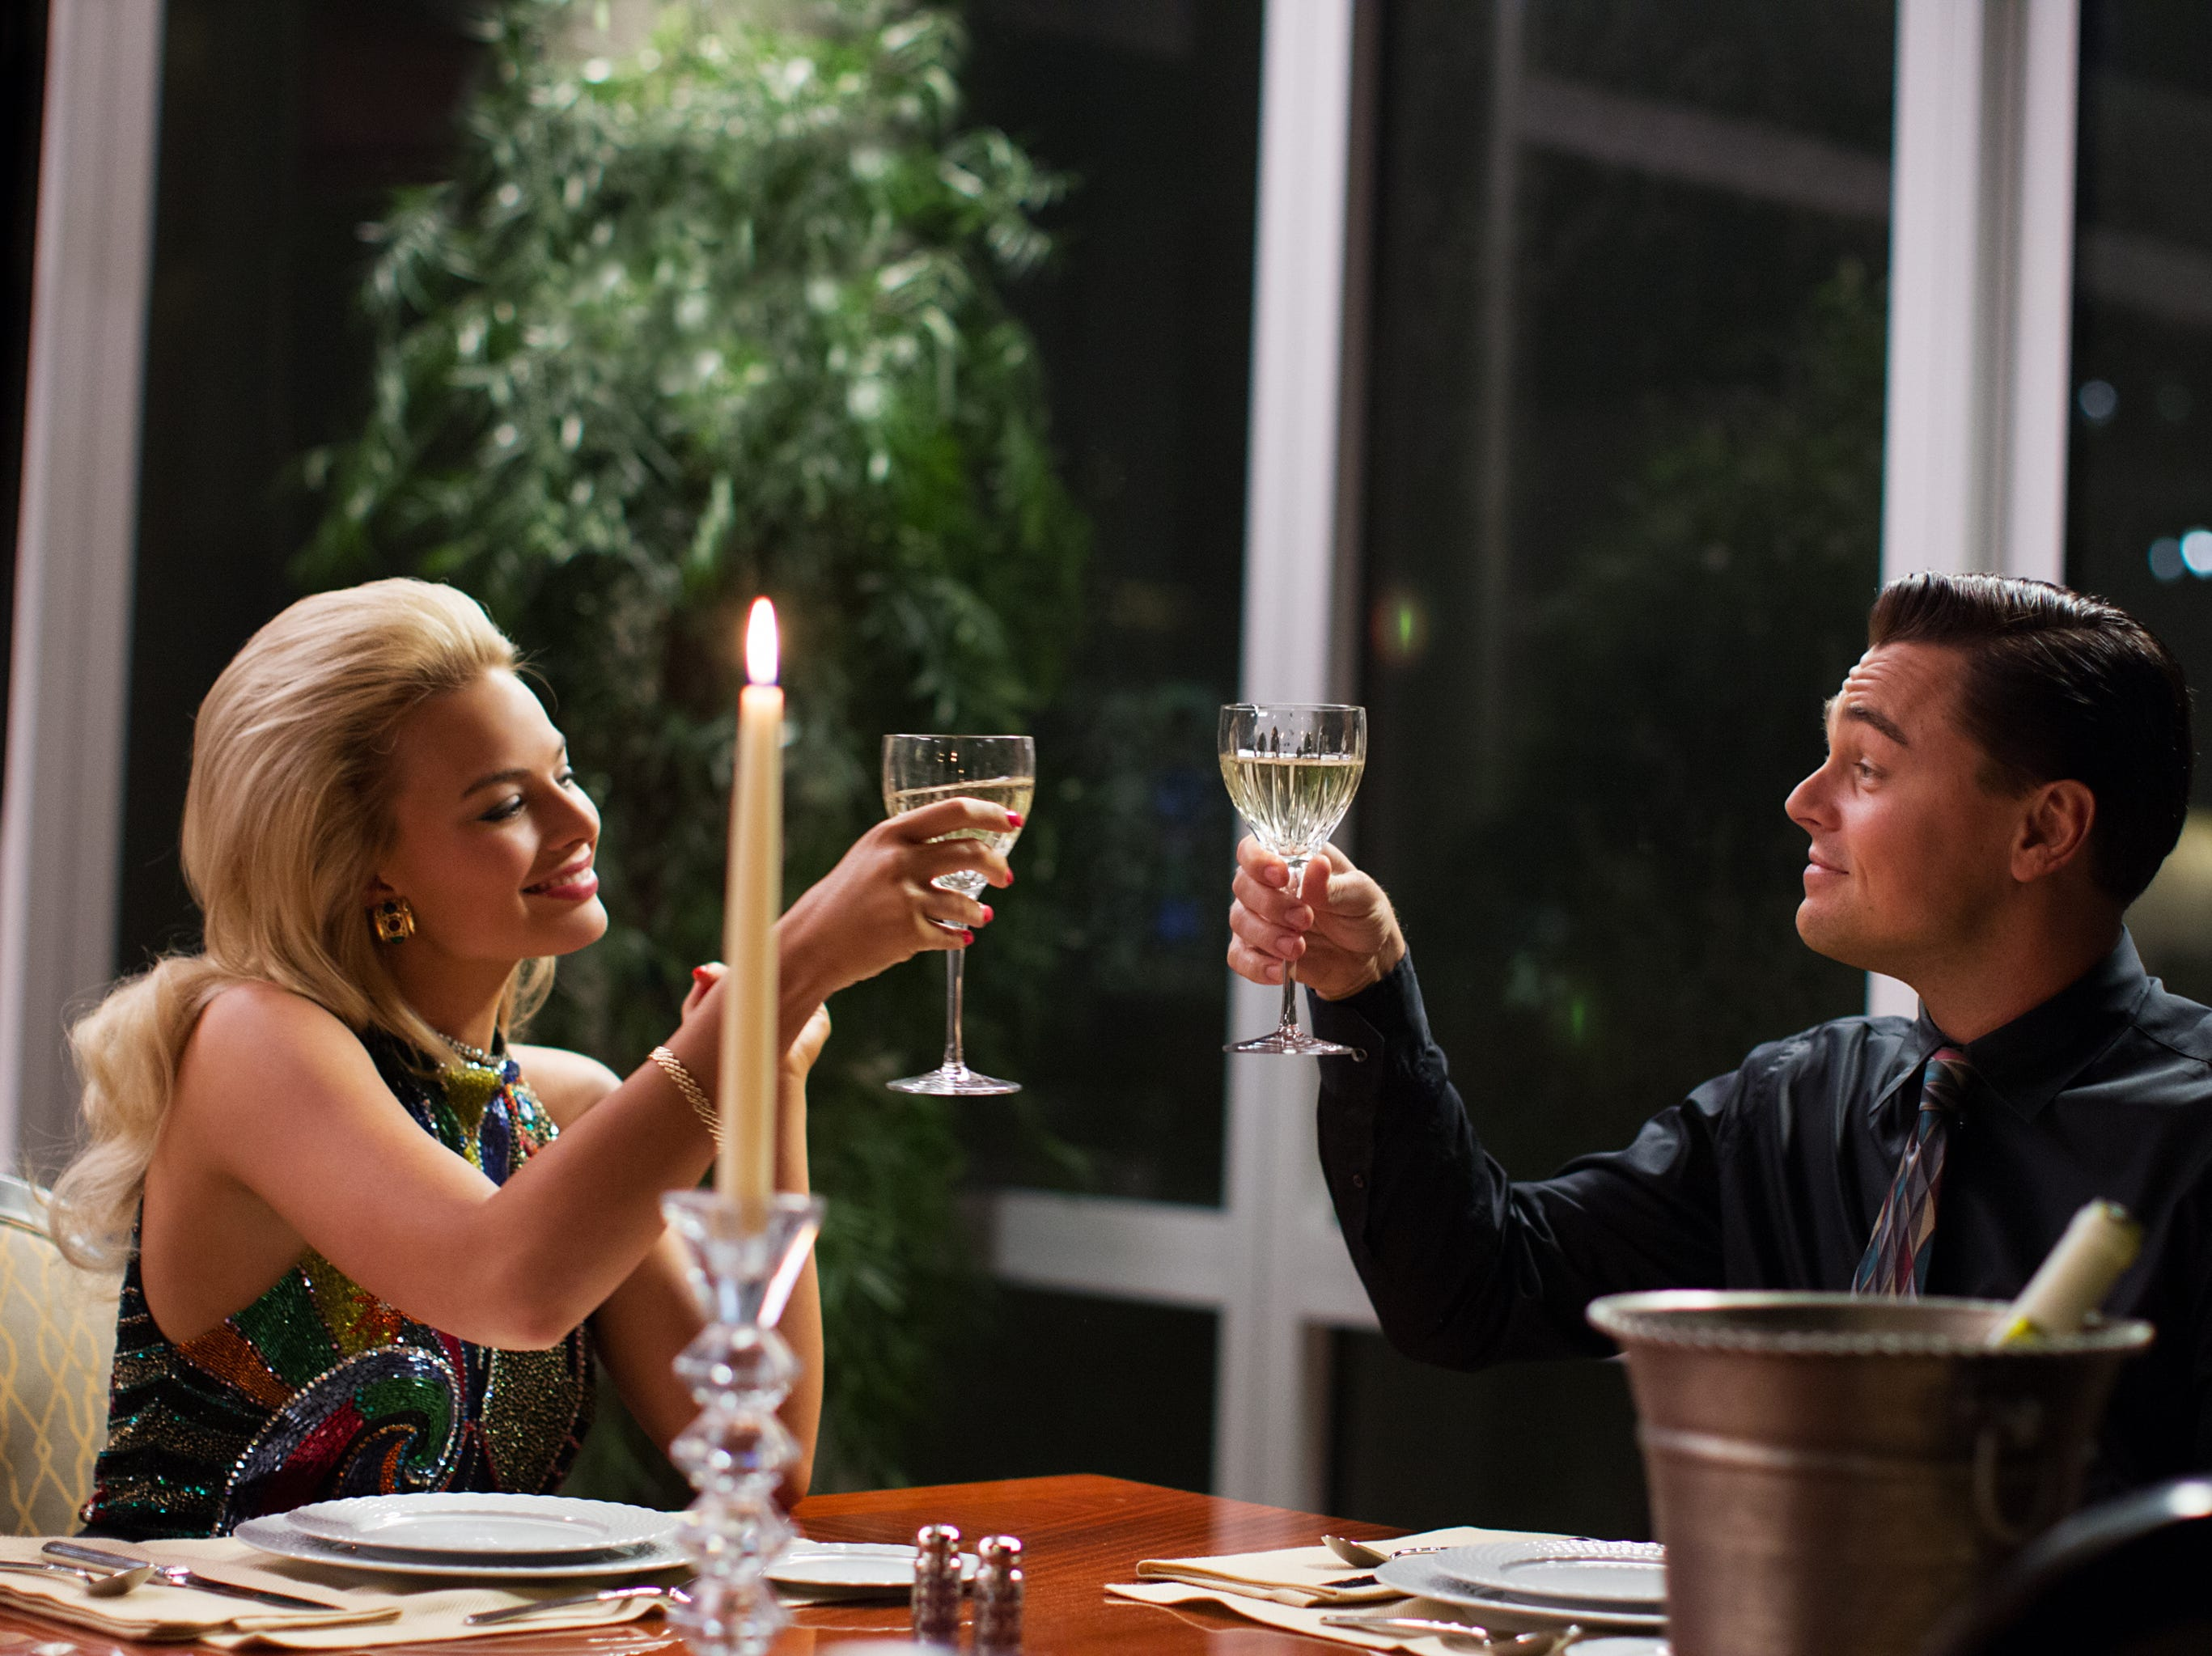 Left to right: Margot Robbie is Naomi Lapaglia and Leonardo DiCaprio is Jordan Belfort in in a scene from the motion picture THE WOLF OF WALL STREET, from Paramount Pictures and Red Granite Pictures. TWOWS-04645Rv2 Credit: Mary Cybulski, Paramount Pictures  [Via MerlinFTP Drop]